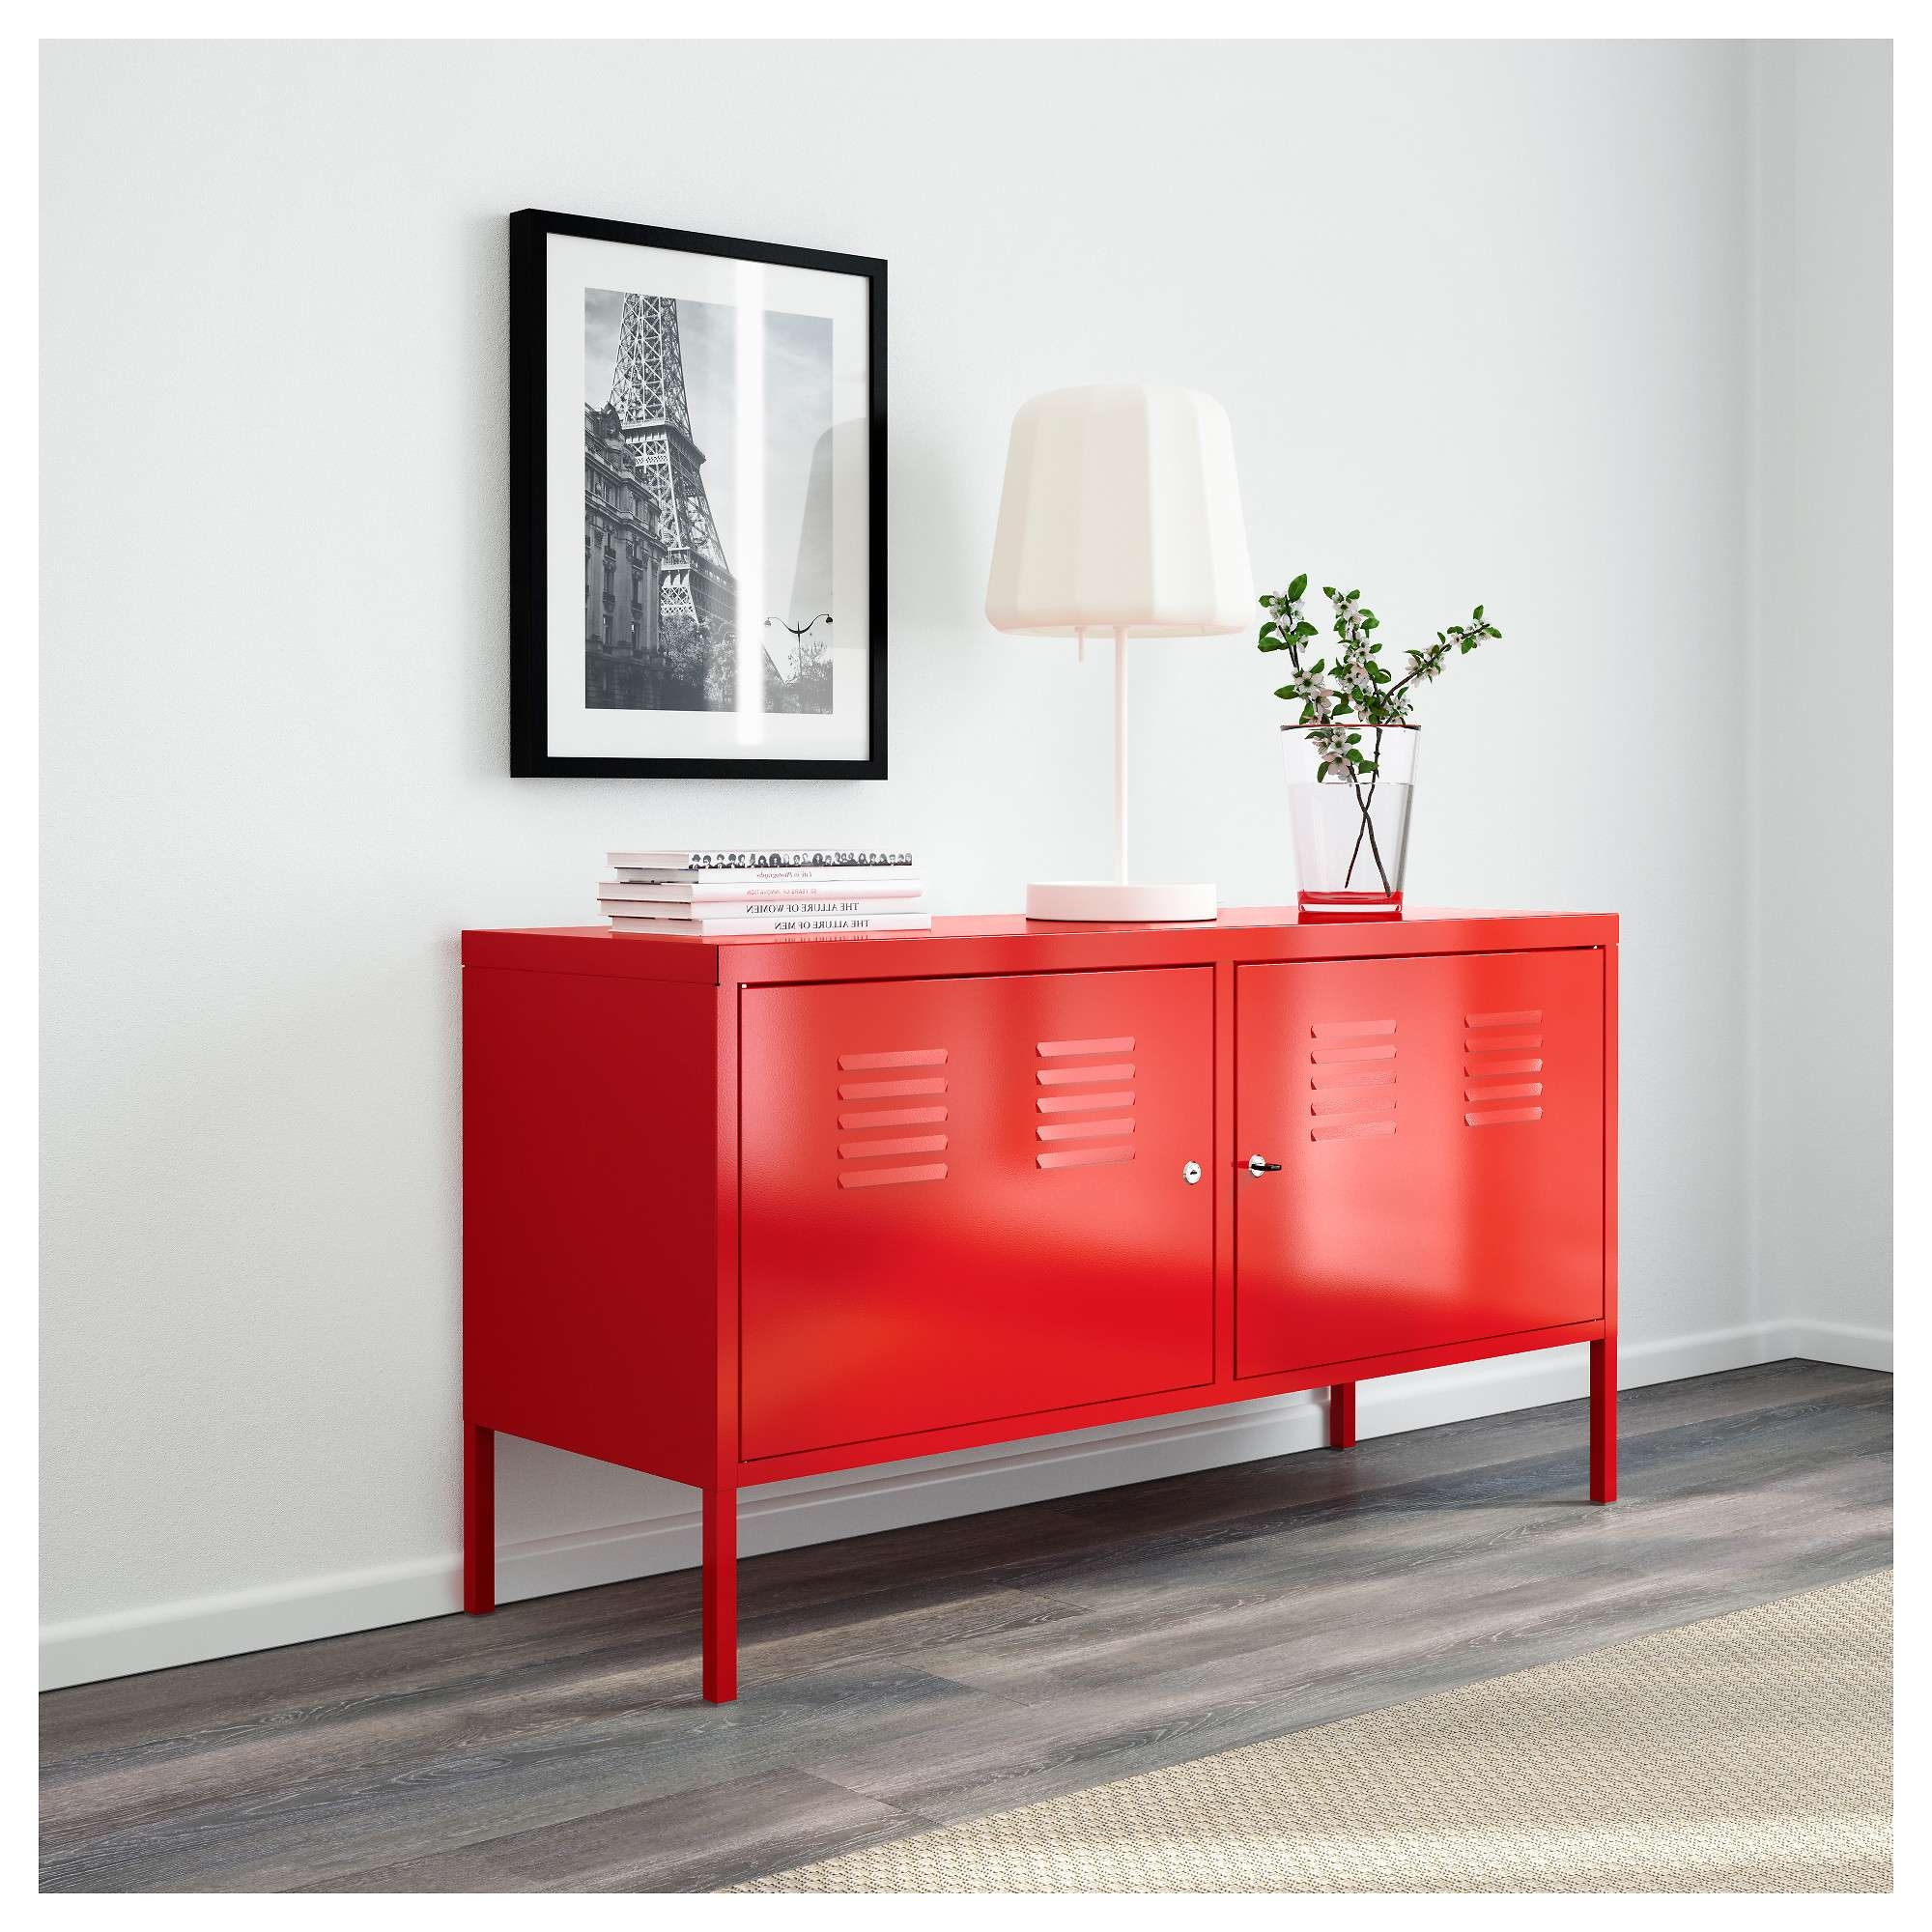 Ikea Ps Cabinet – Red – Ikea Pertaining To Ikea Red Sideboards (Gallery 2 of 20)